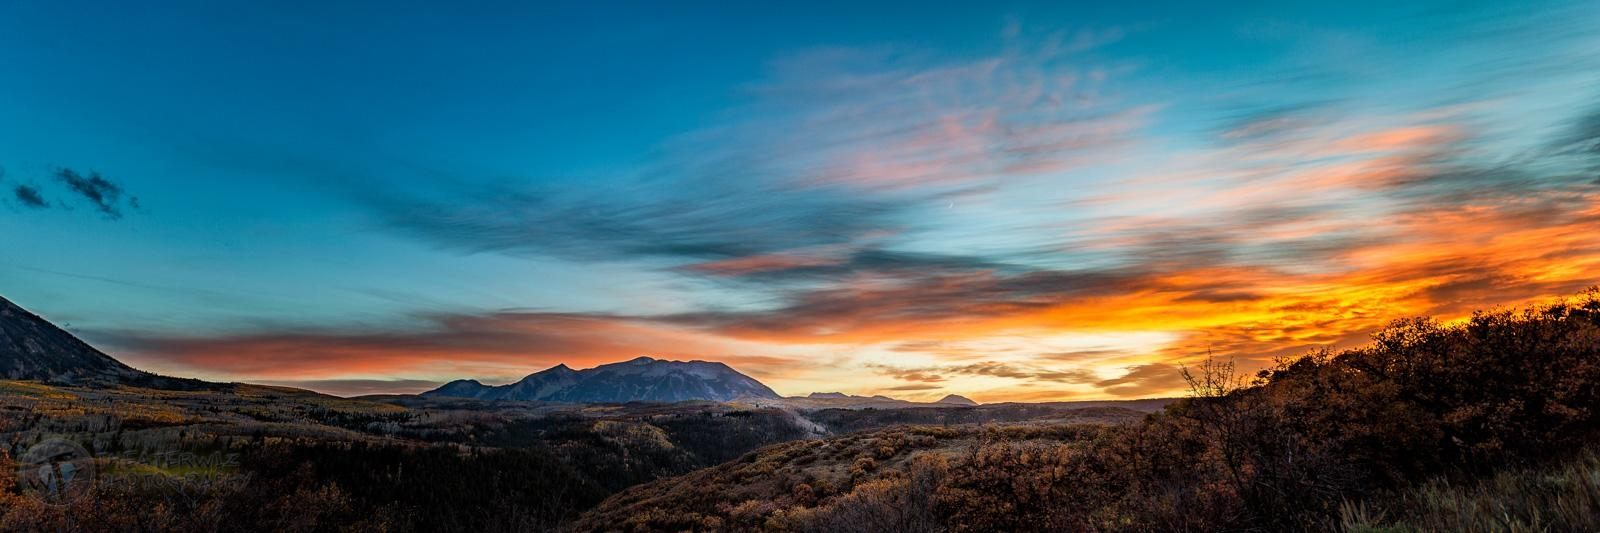 Crested Butte Sunset